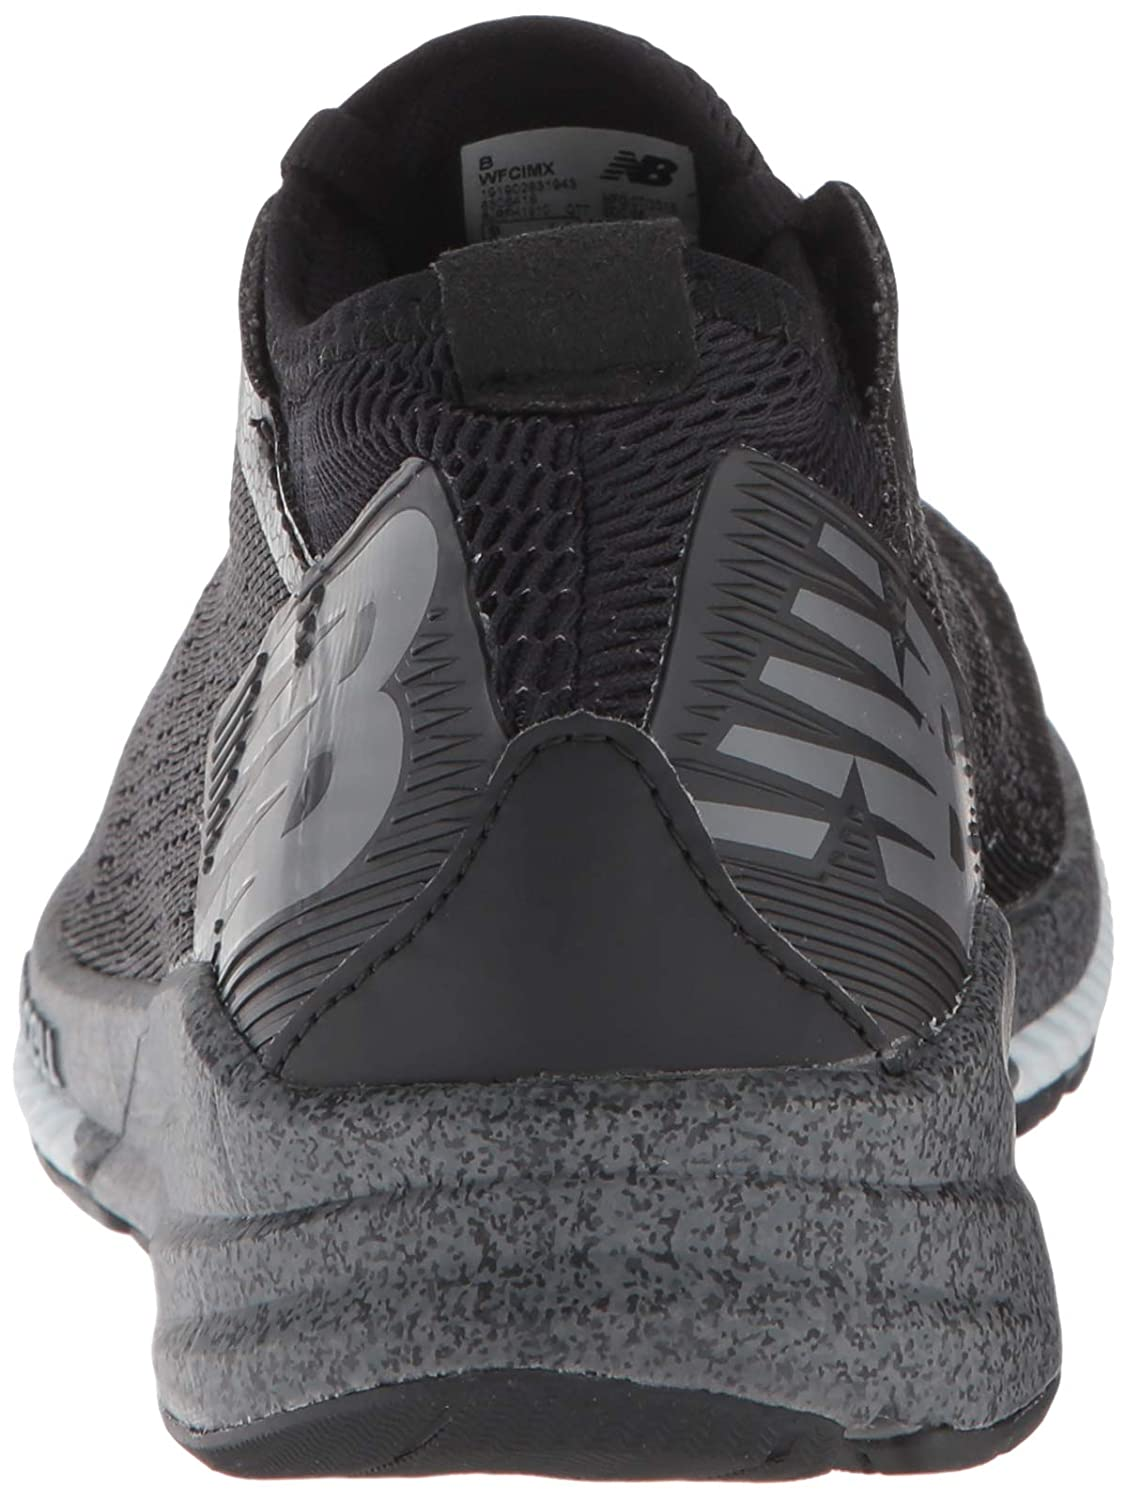 New Balance Damen Fuel Cell Impulse Laufschuhe, grau, 40 EU Black/Copper 2